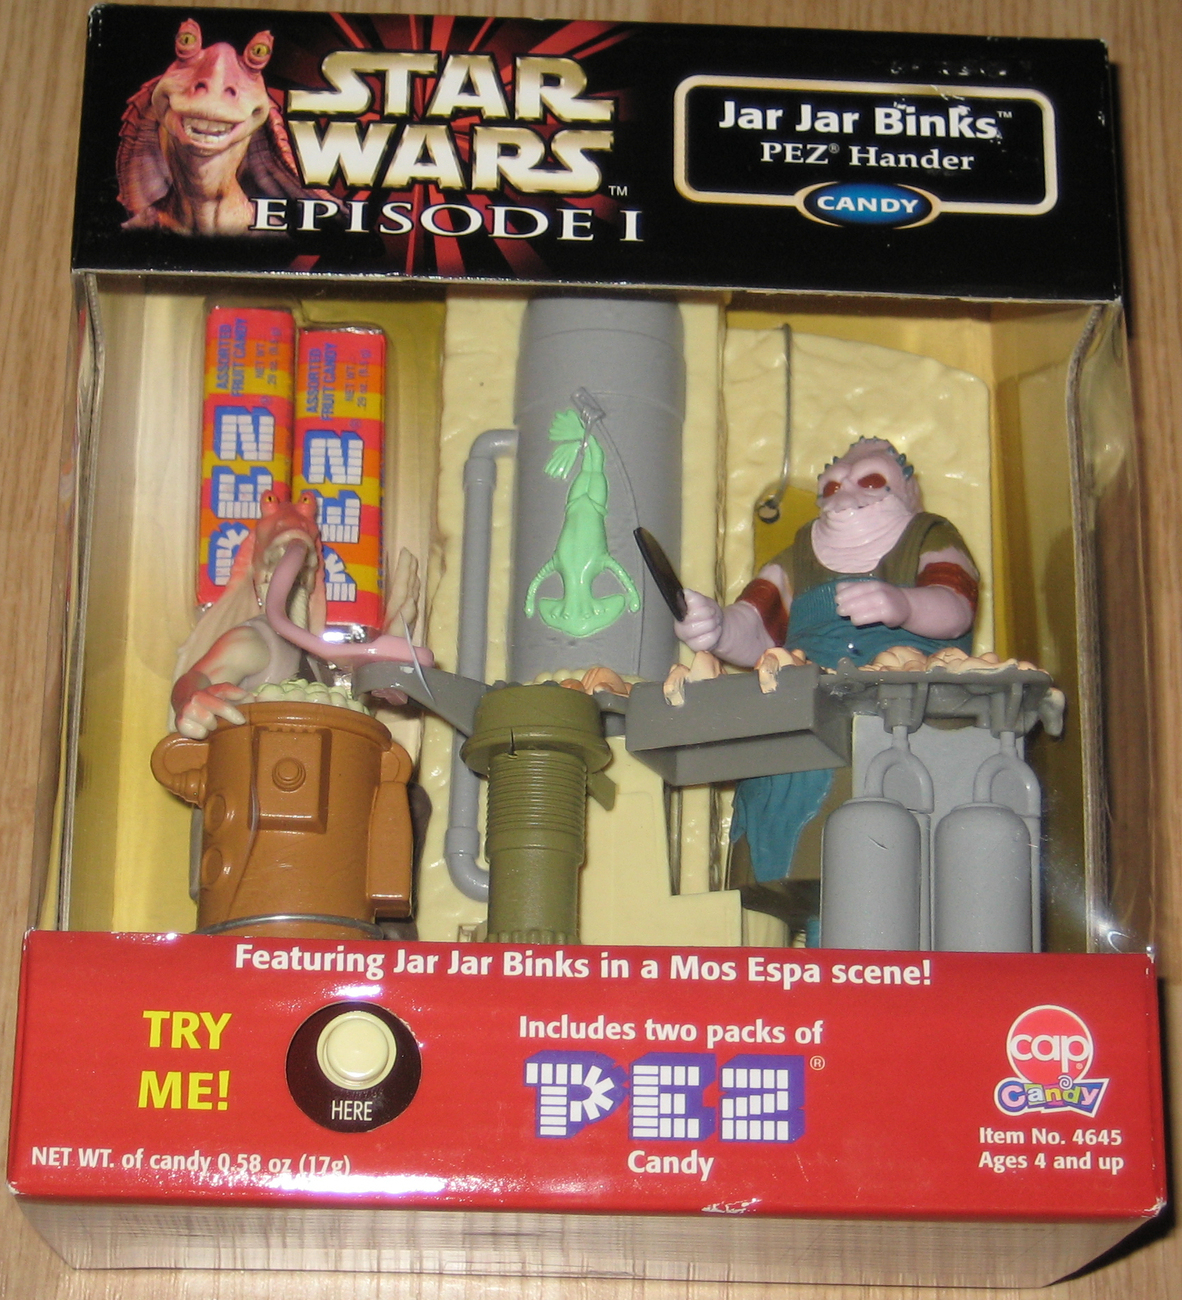 * 1999 Star Wars Jar Jar Binks Mos Espa PEZ Handler MIB